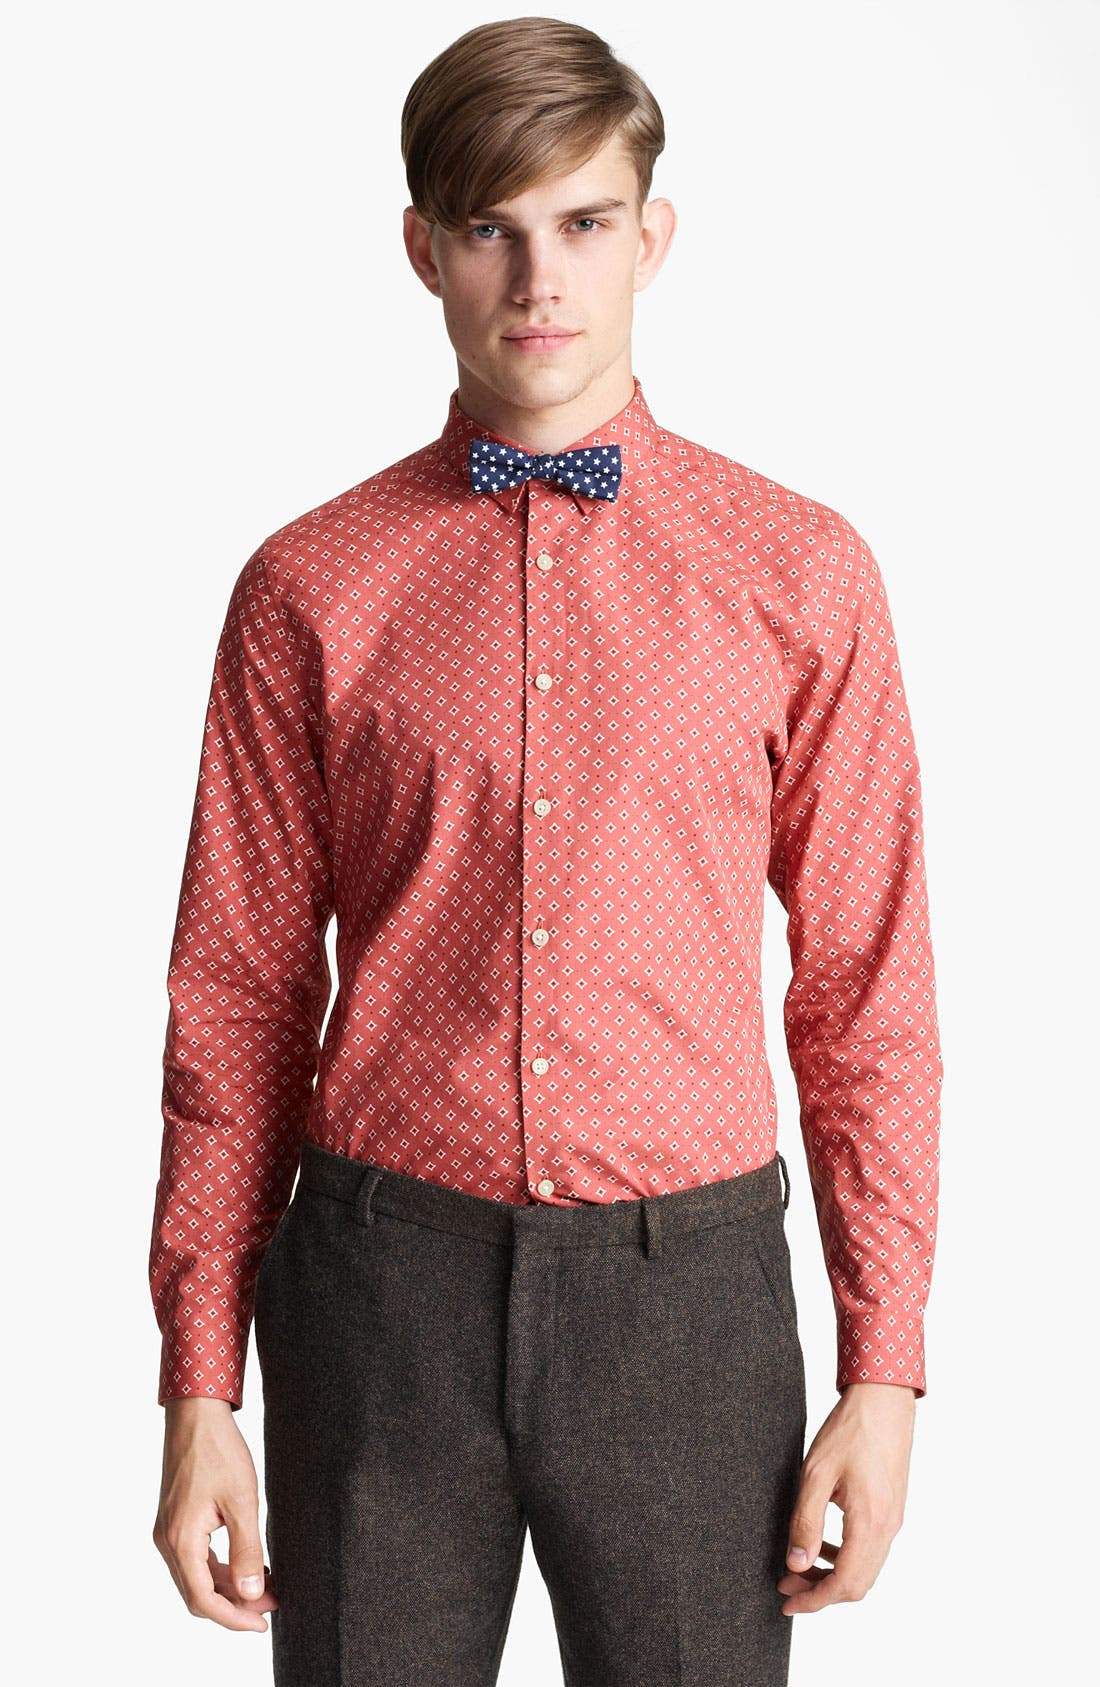 Alternate Image 1 Selected - Topman 'Smart' Extra Trim Diamond Print Dress Shirt